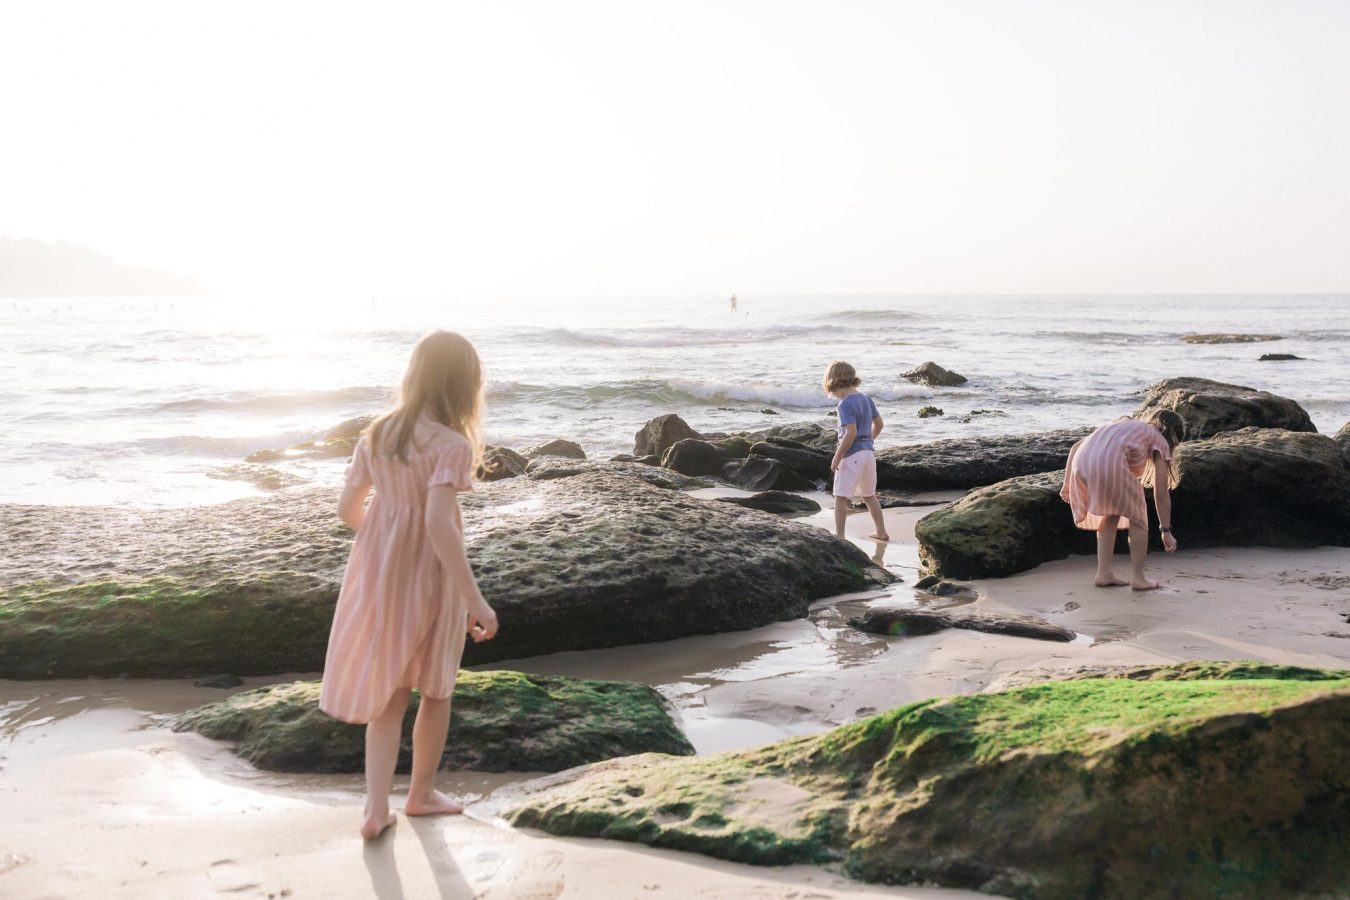 Family photographer bondi beach sydney australia-0019